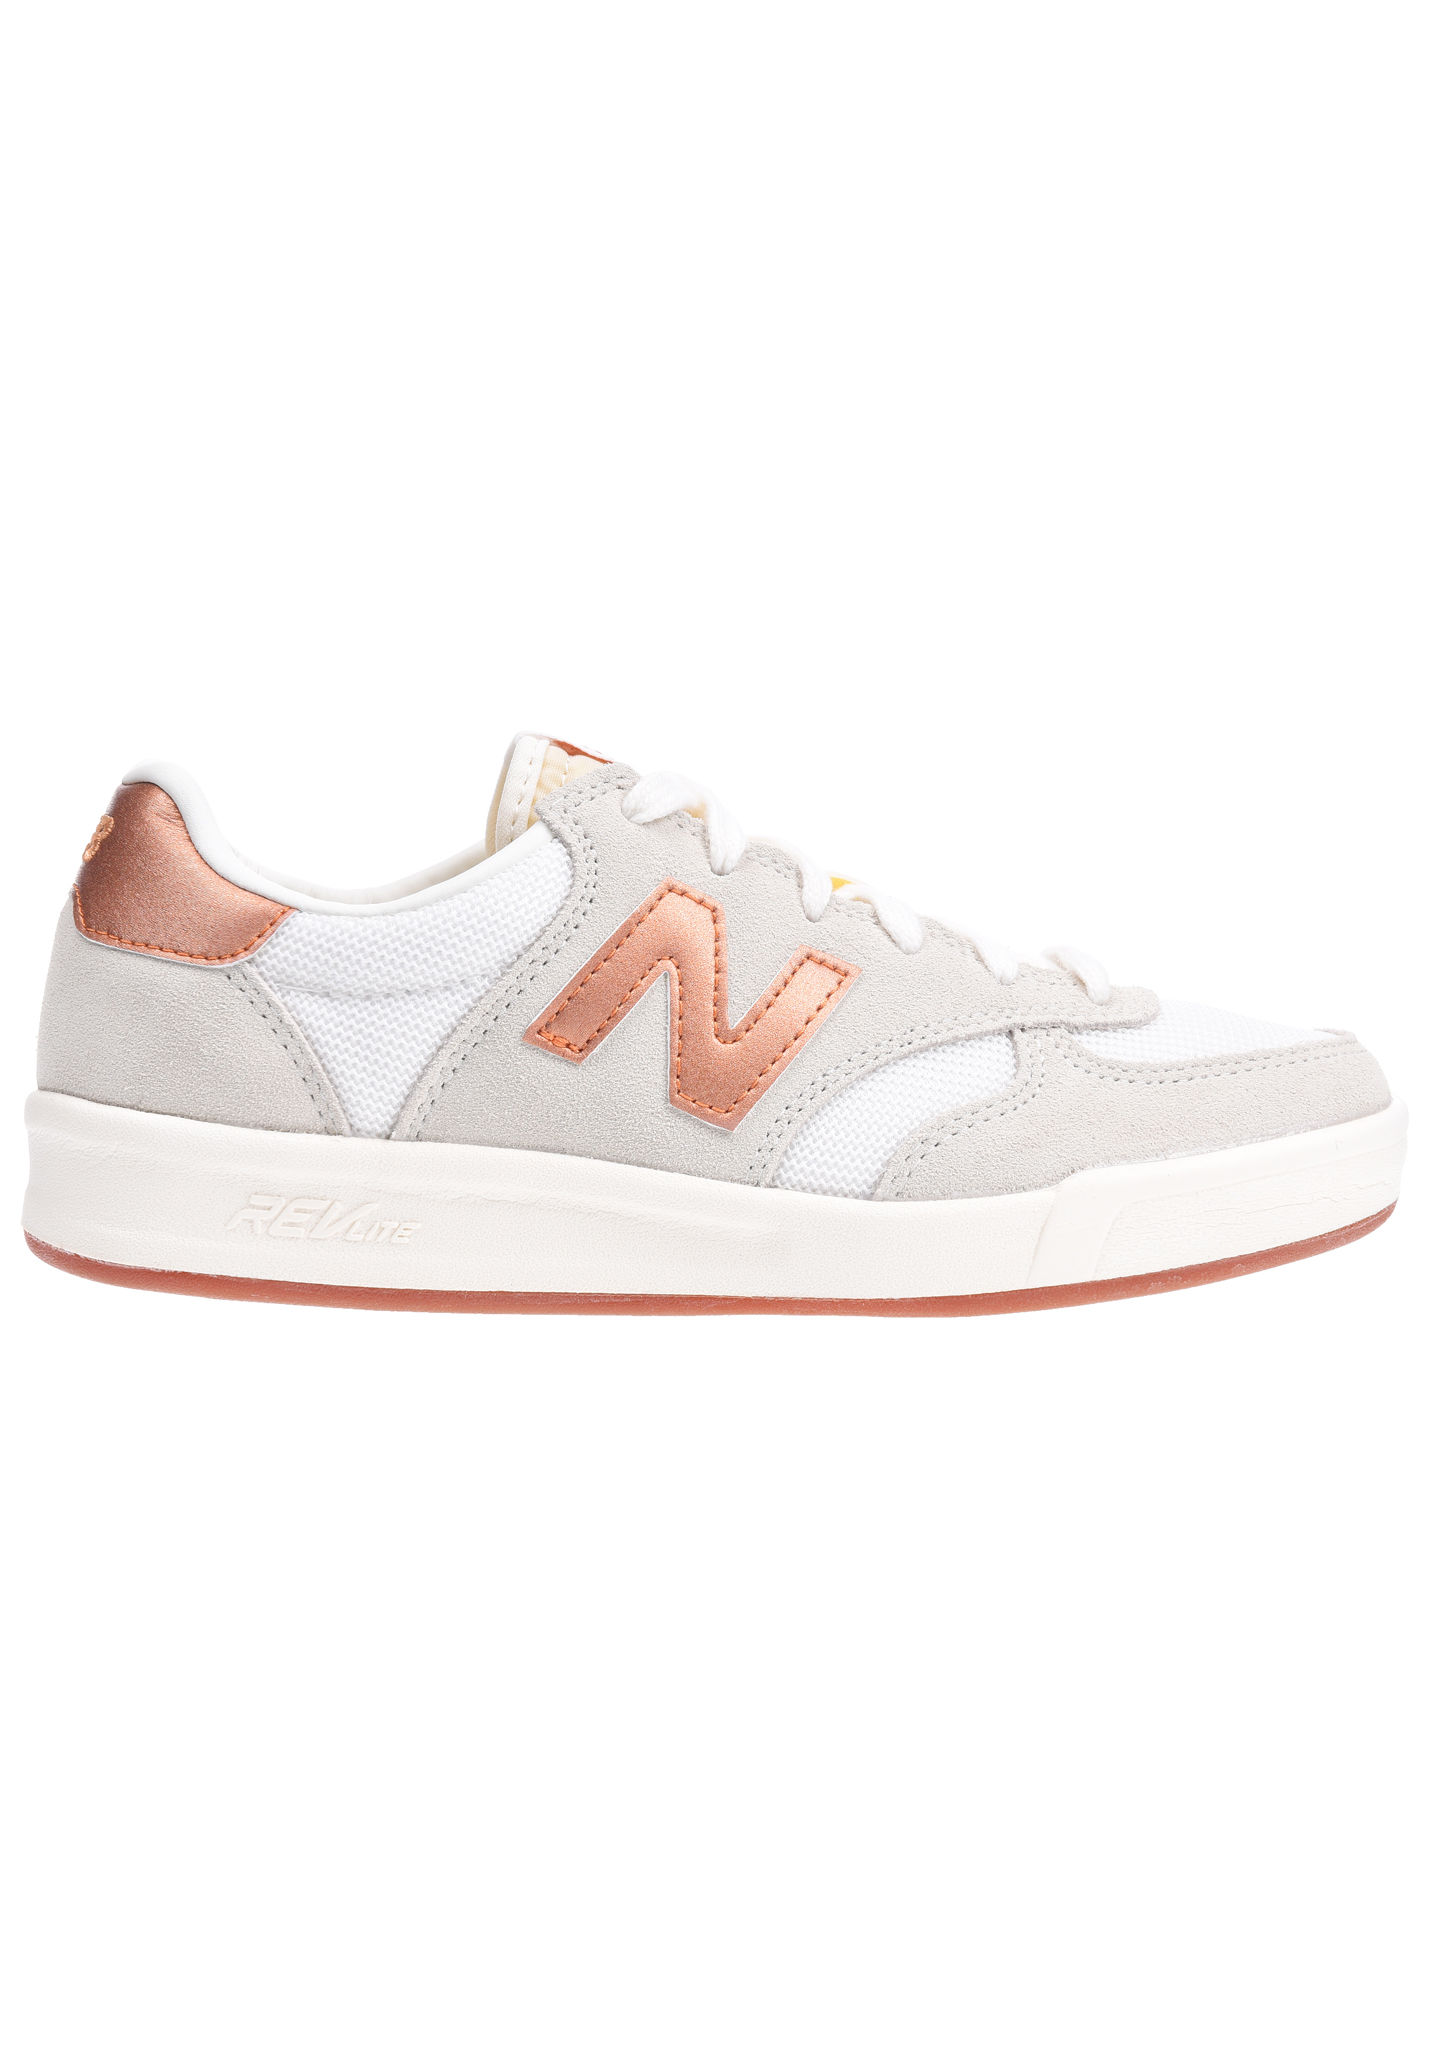 345f833f468 NEW BALANCE WRT300 B - Zapatillas para Mujeres - Blanco - Planet Sports